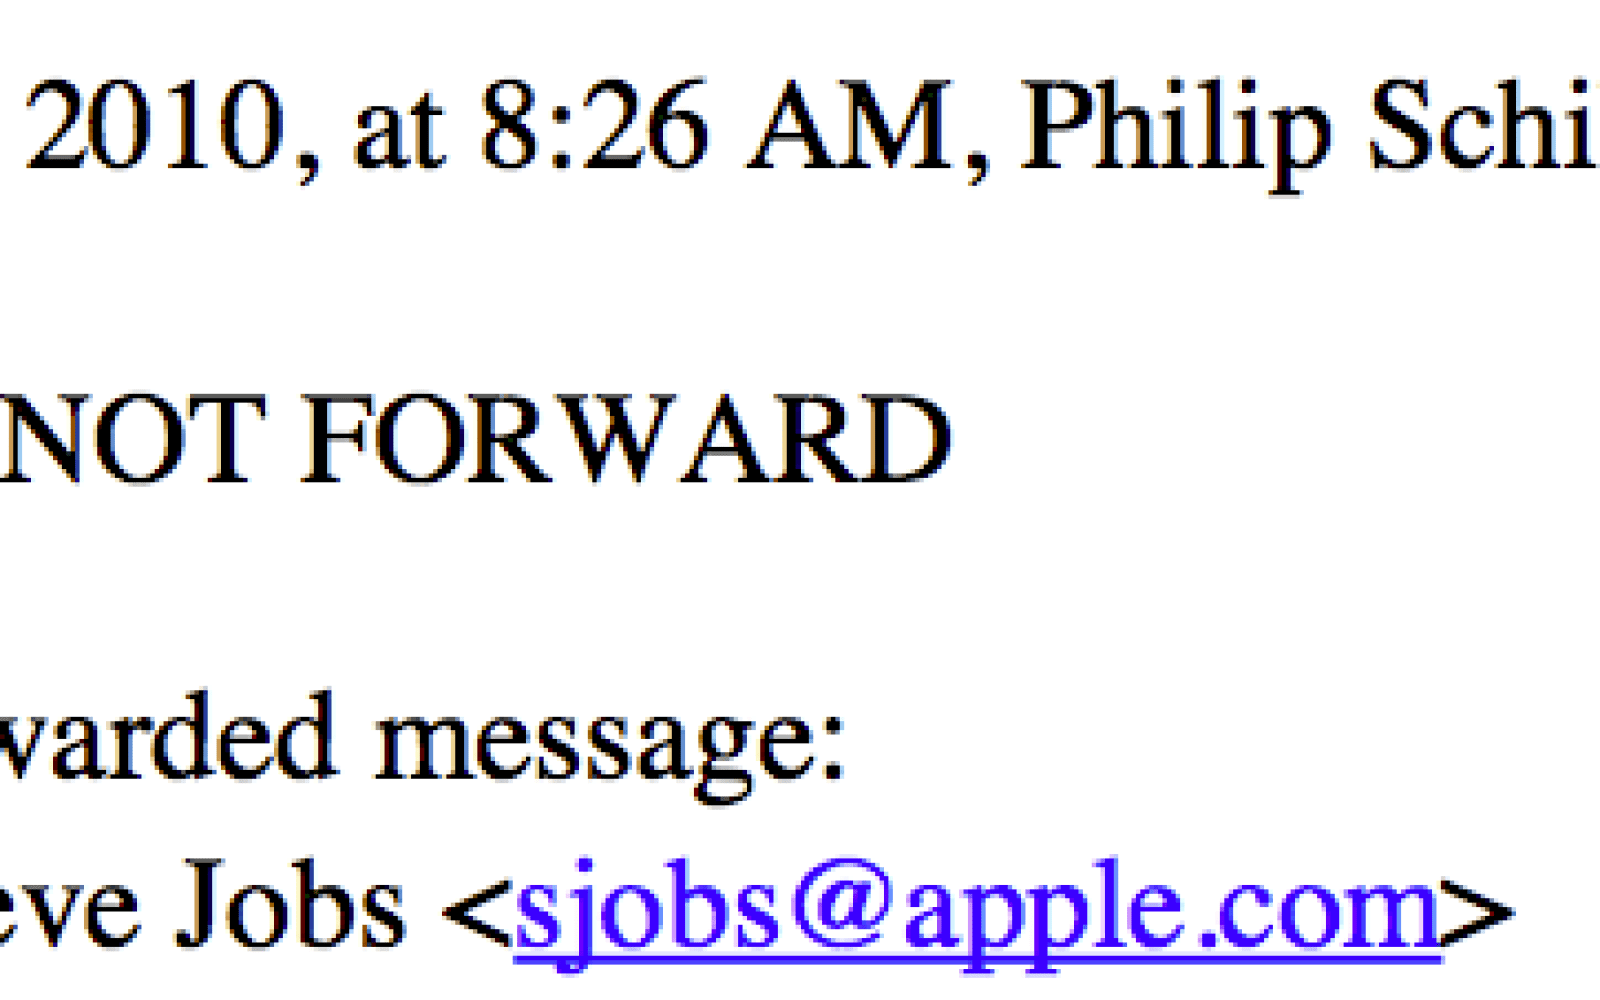 New Steve Jobs email a treasure trove of information about Apple TV, Google 'holy war,' and behind-the-scenes strategy